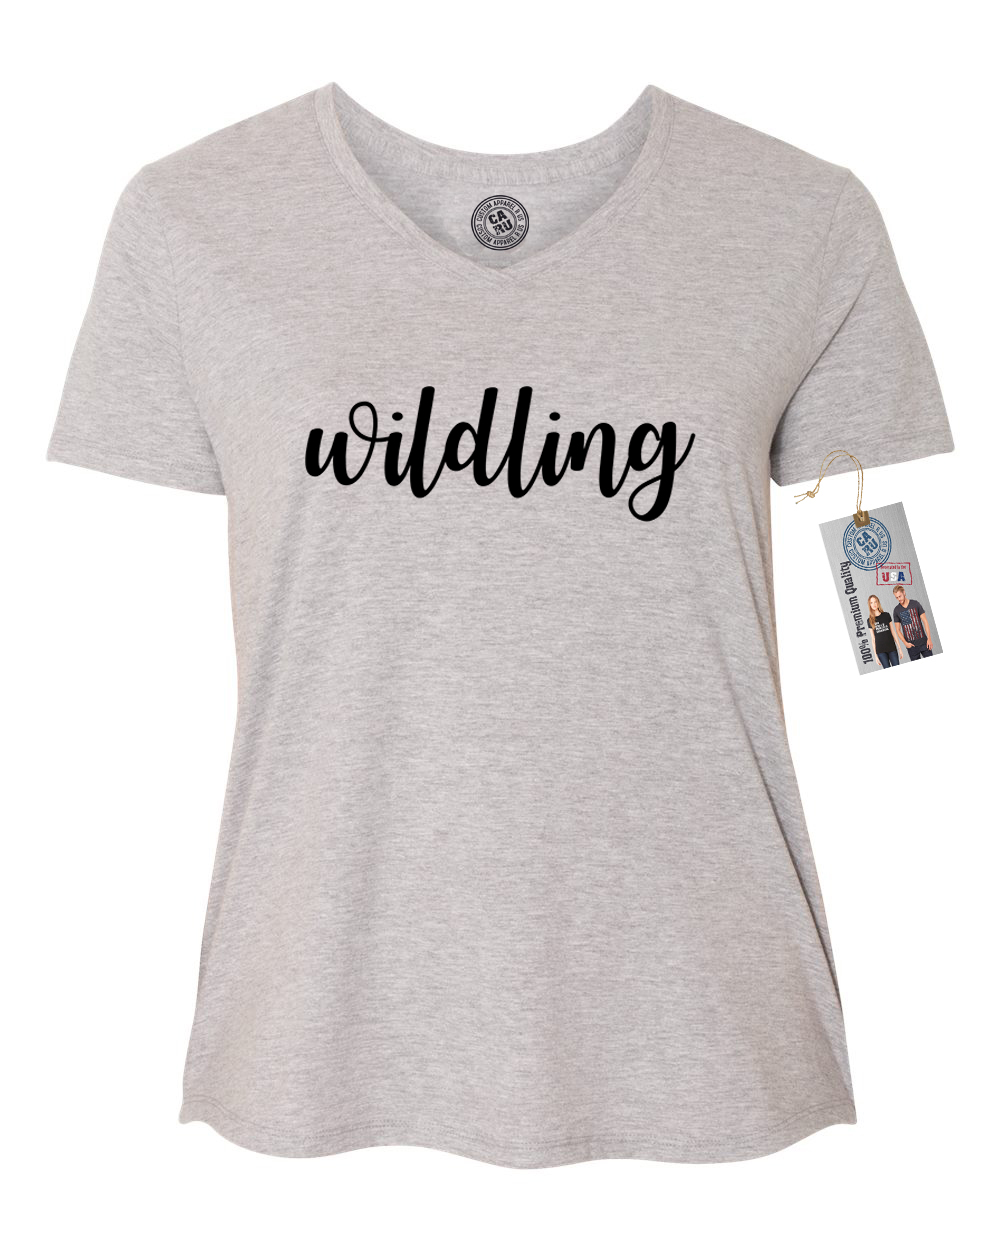 Games of Throne Wildling Shirt Plus Size Womens V Neck T-Shirt Top